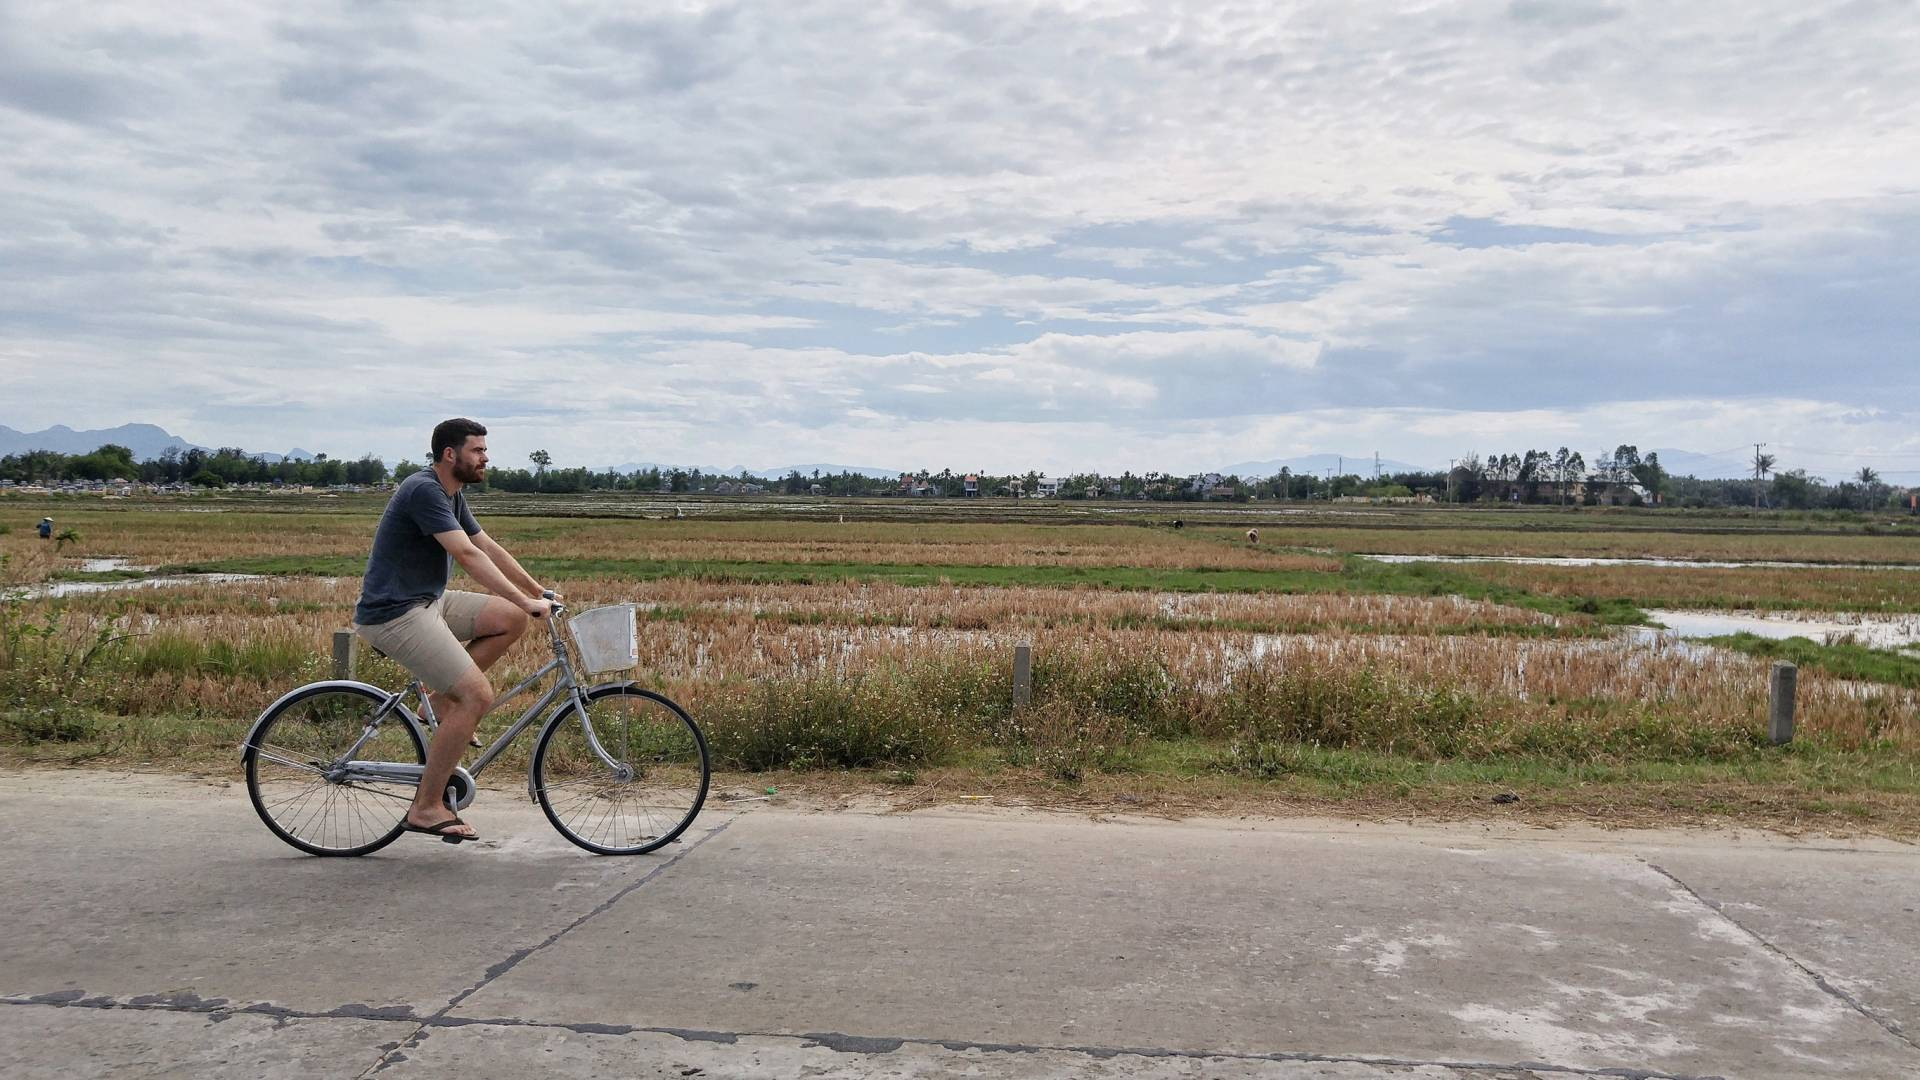 bike riding in hoi an vietnam